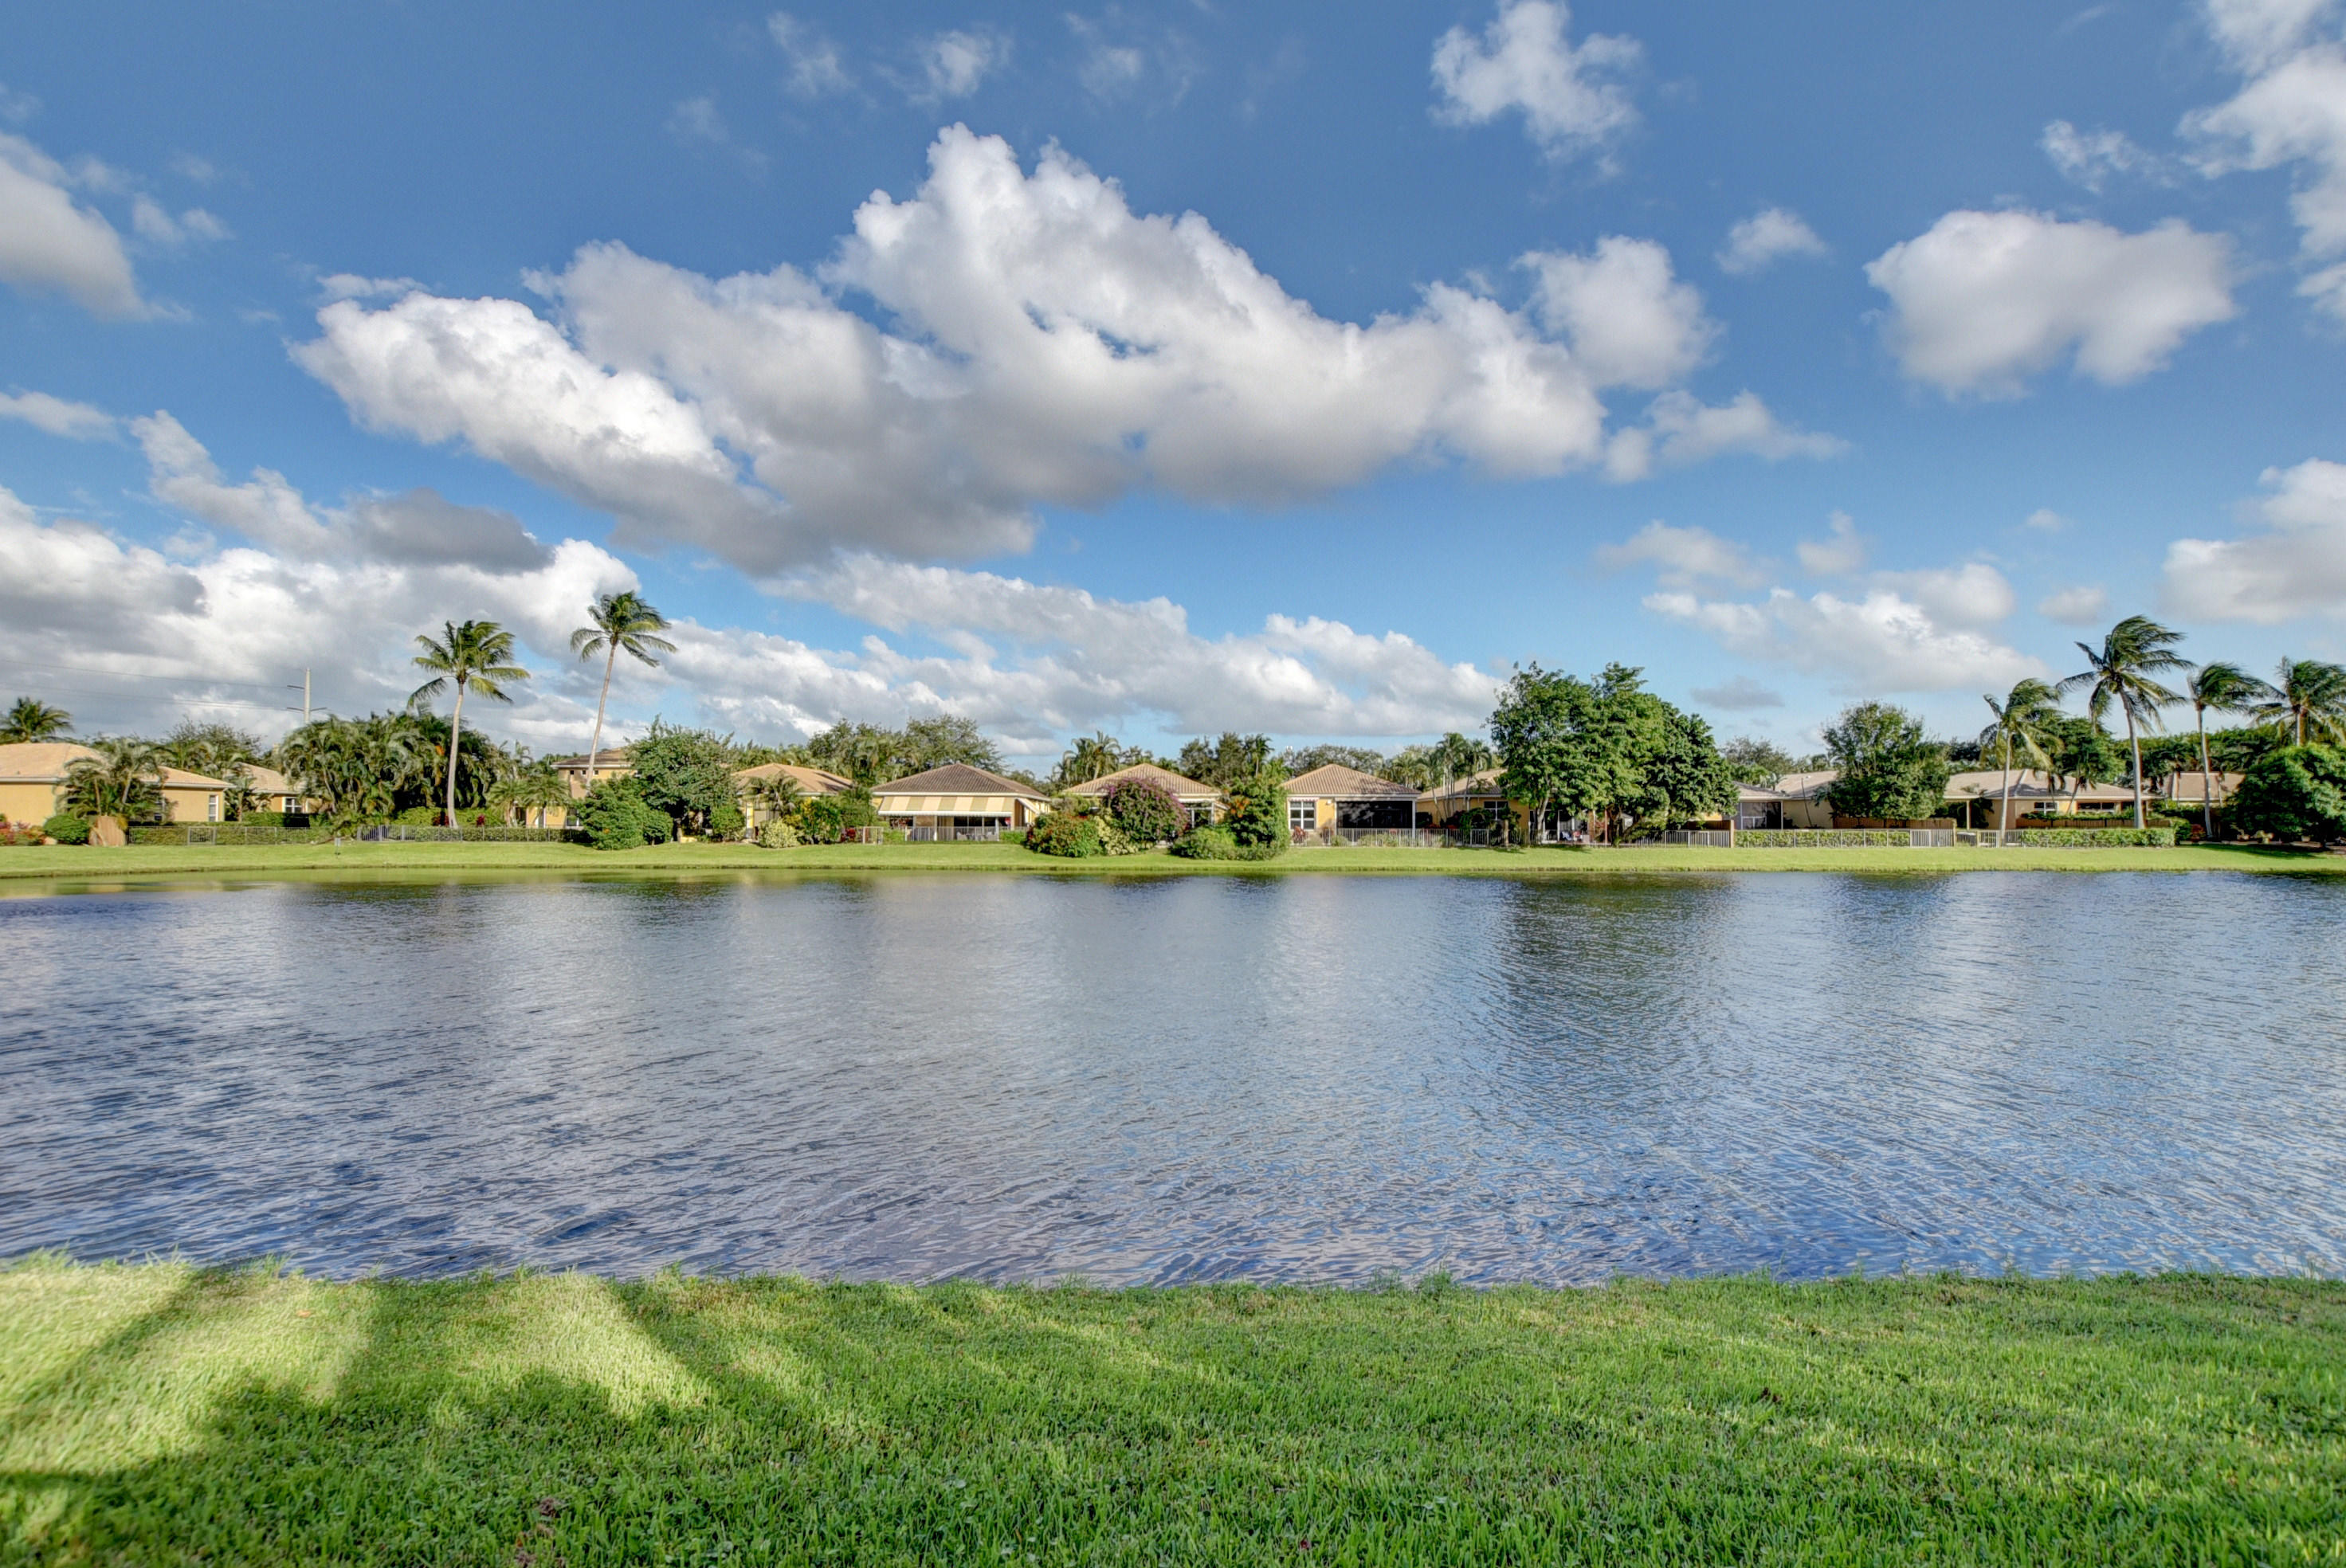 Details for 6650 24th Terrace Nw, Boca Raton, FL 33496